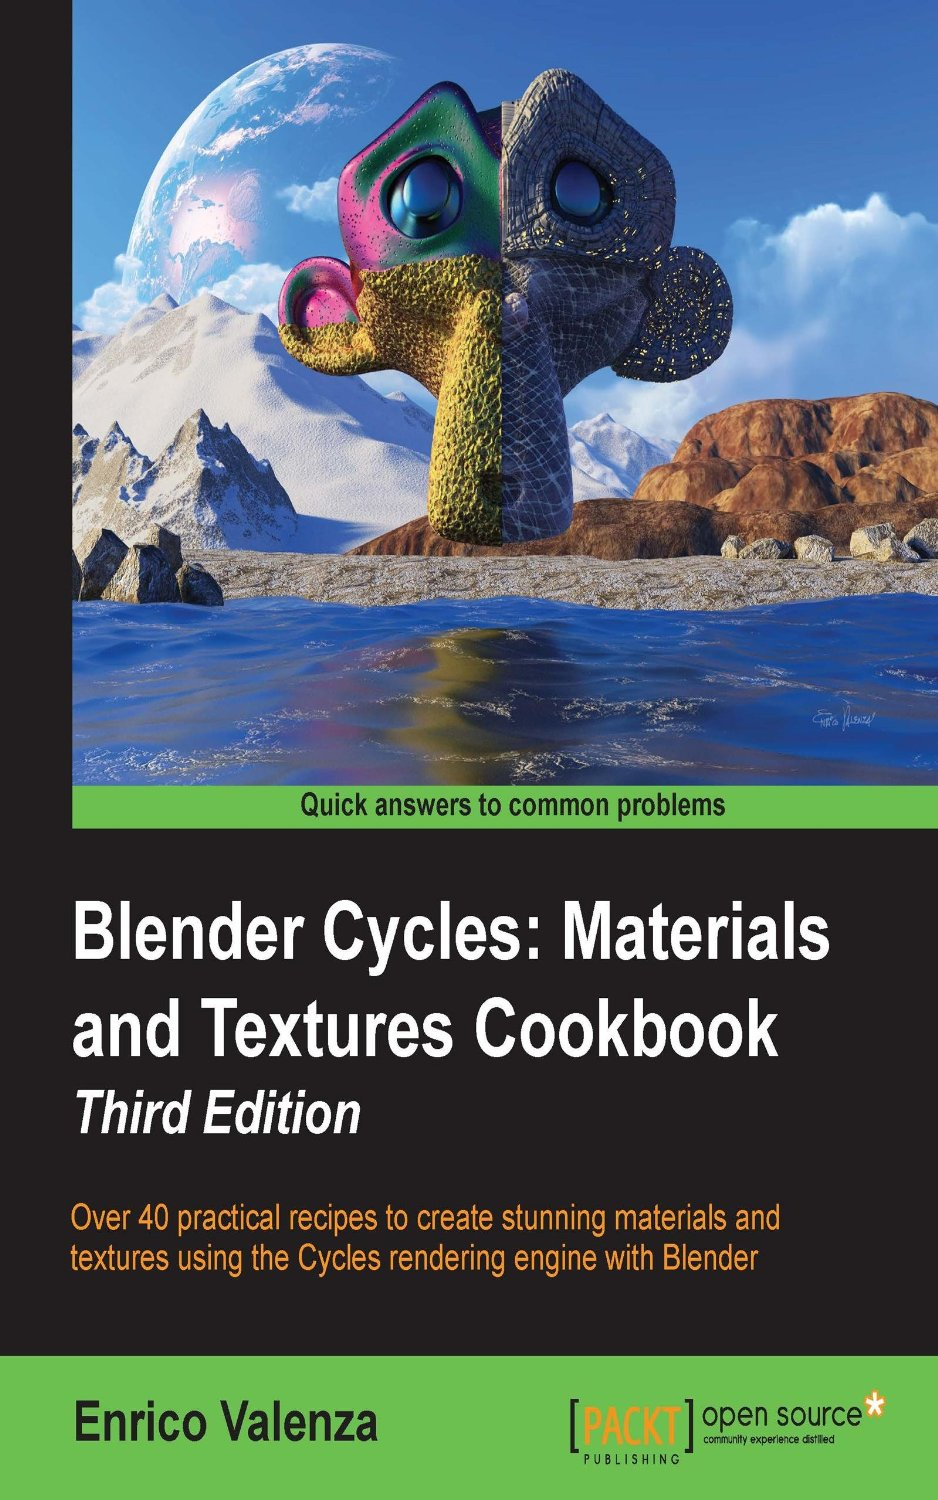 Blender Cycles: Materials and Textures Cookbook, Third Edition free download